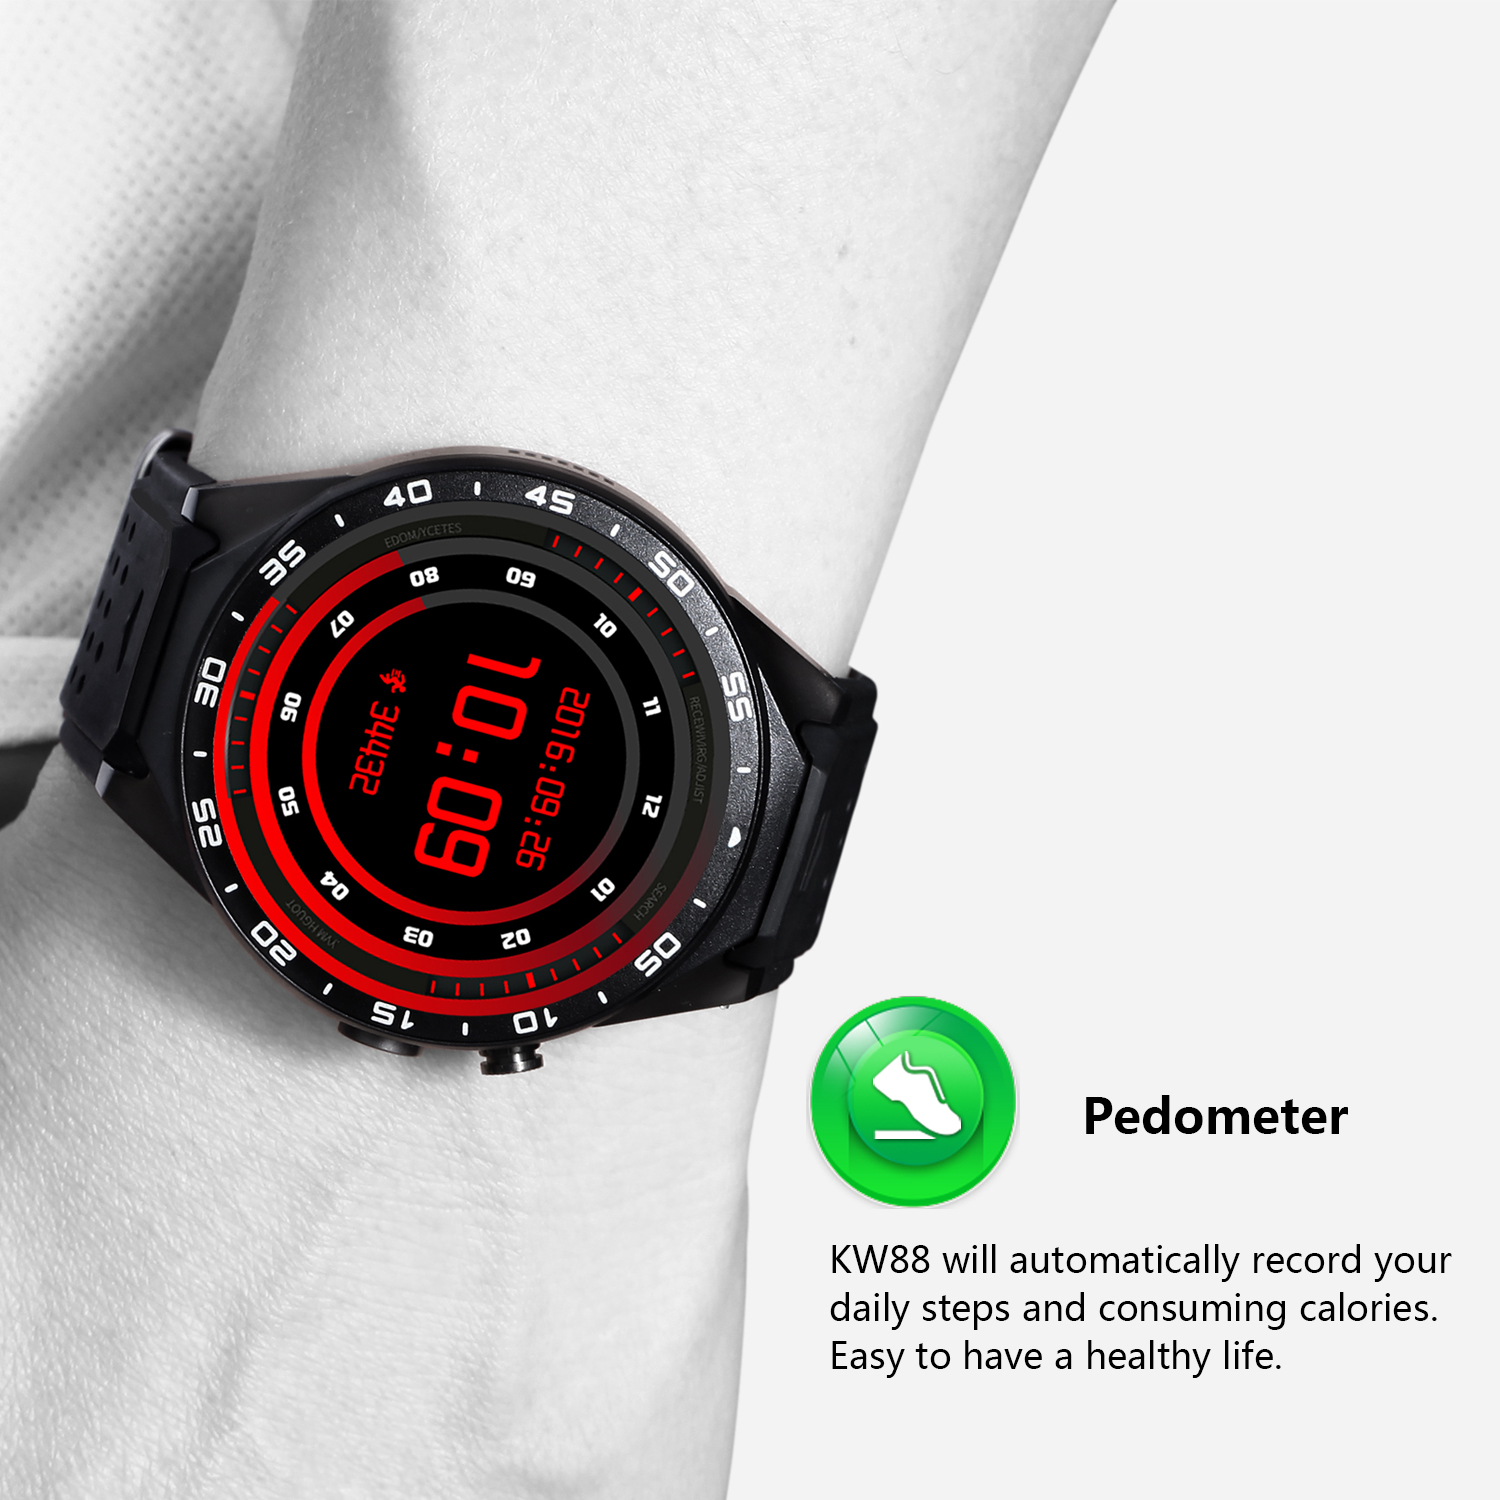 kw88 Android 5.1 Smart Watch 512MB + 4GB Bluetooth 4.0 WIFI 3G Smartwatch Phone Wristwatch Support Google Voice GPS Map kw88 smart watch phone android bluetooth wifi support google play gps map mtk6580 quad core 1 39 inch screen smartwatch clock